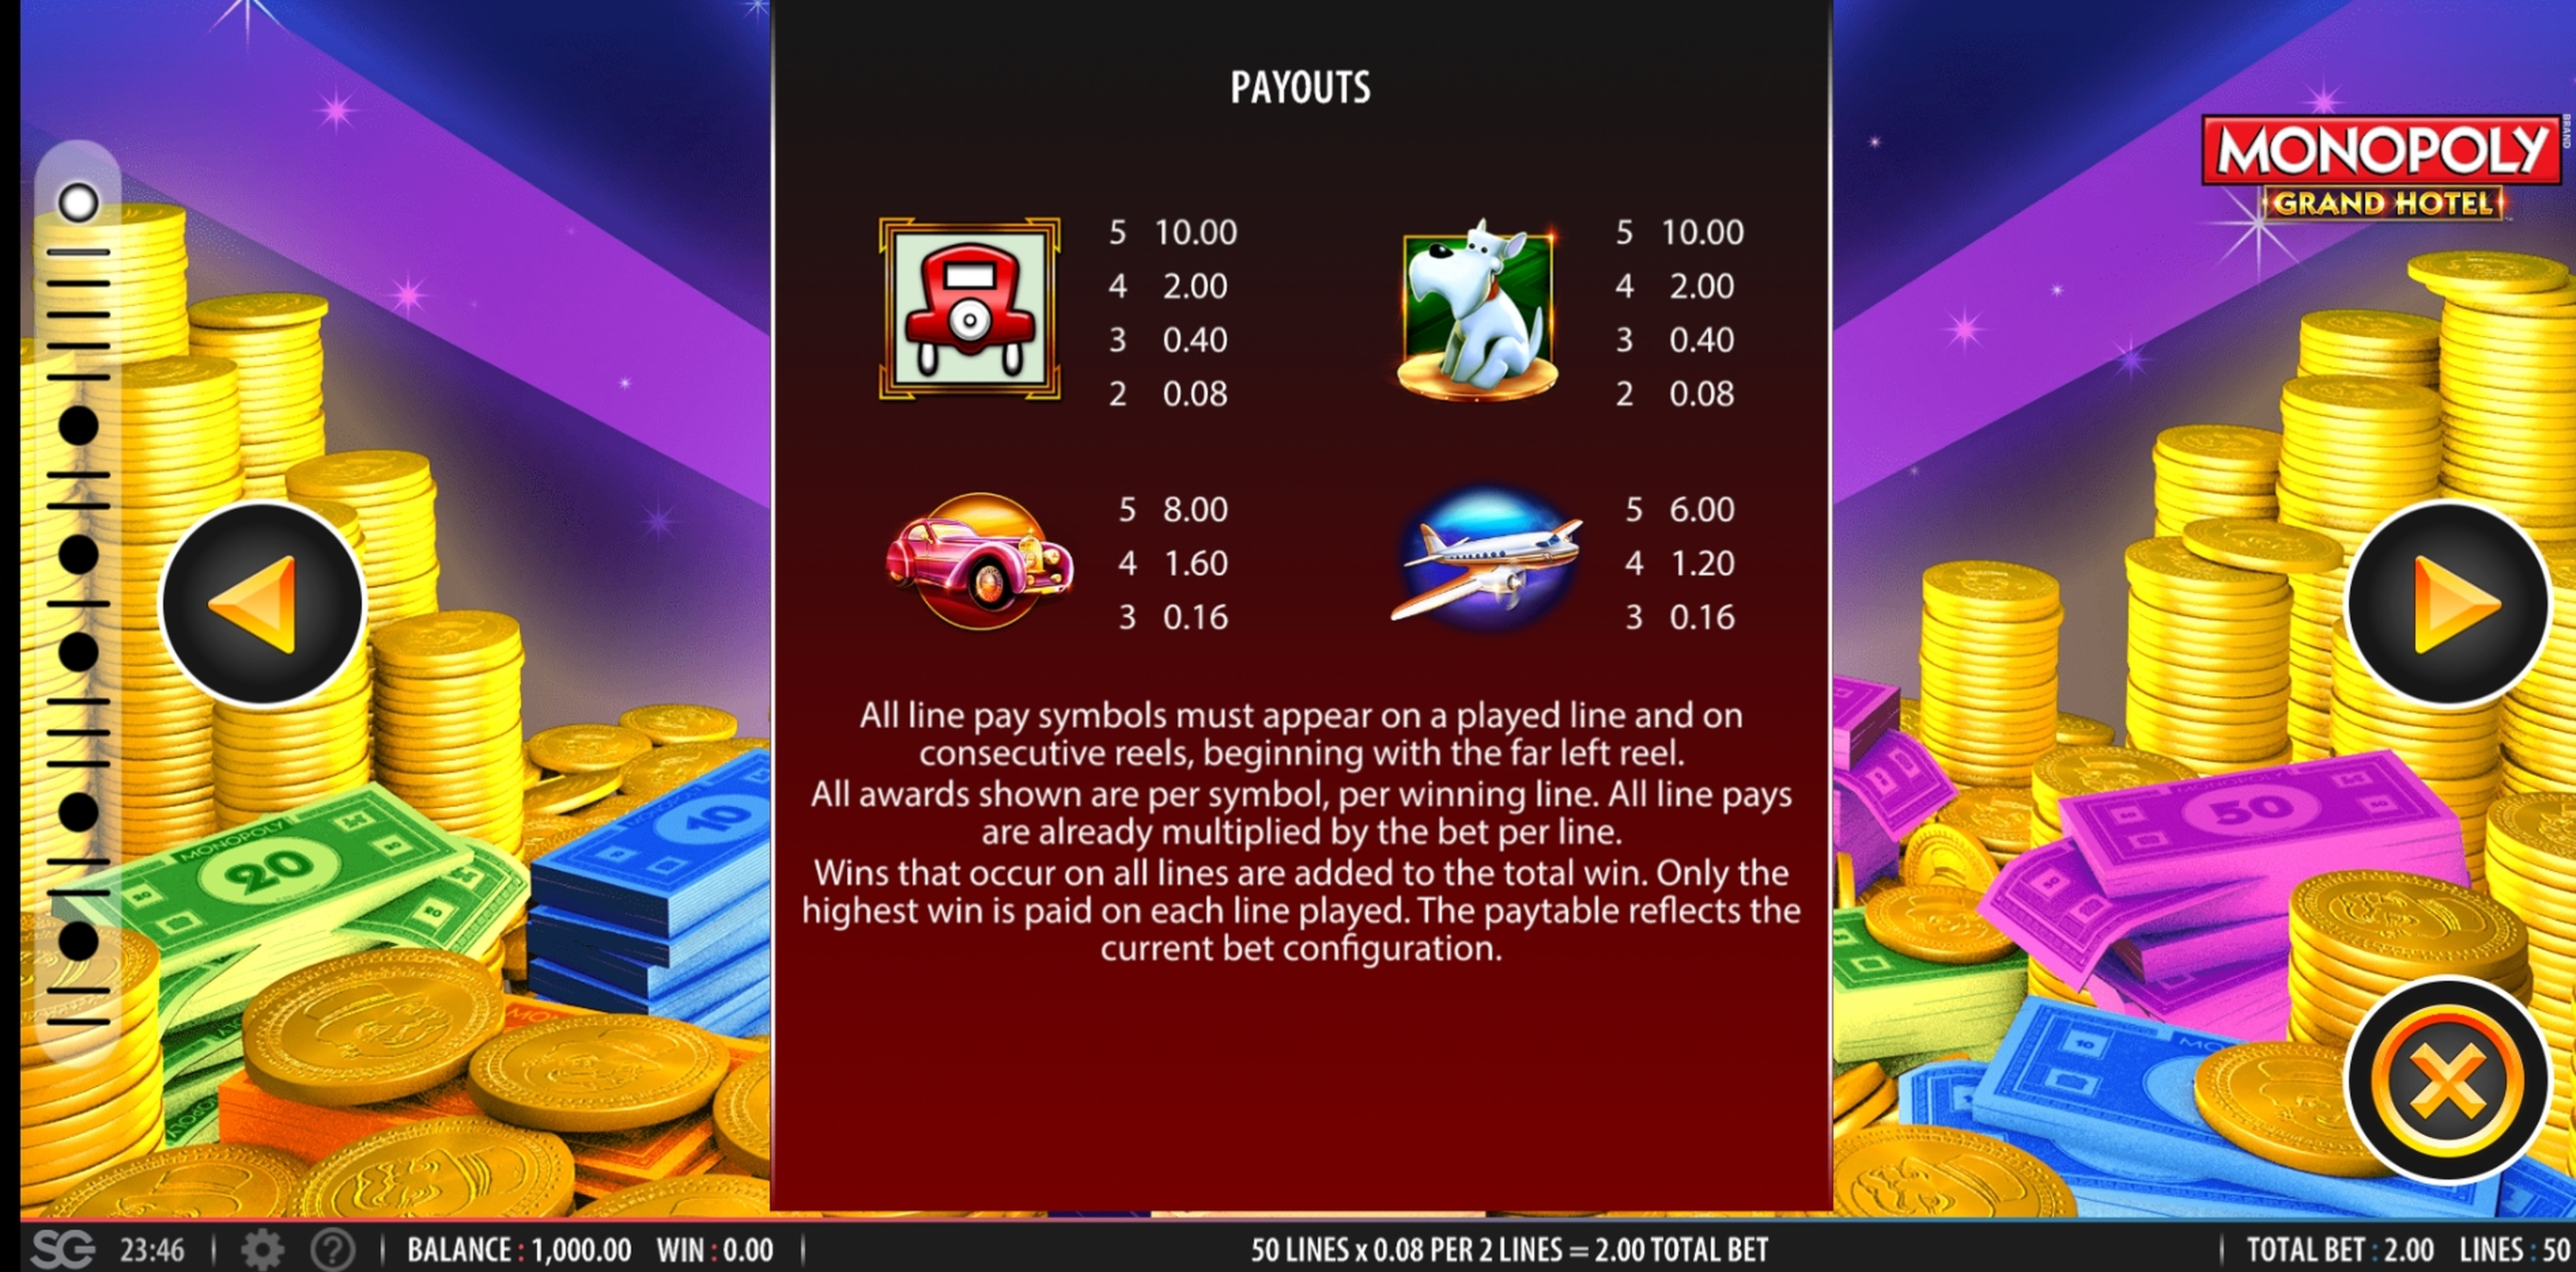 Info of Monopoly Grand Hotel Slot Game by WMS